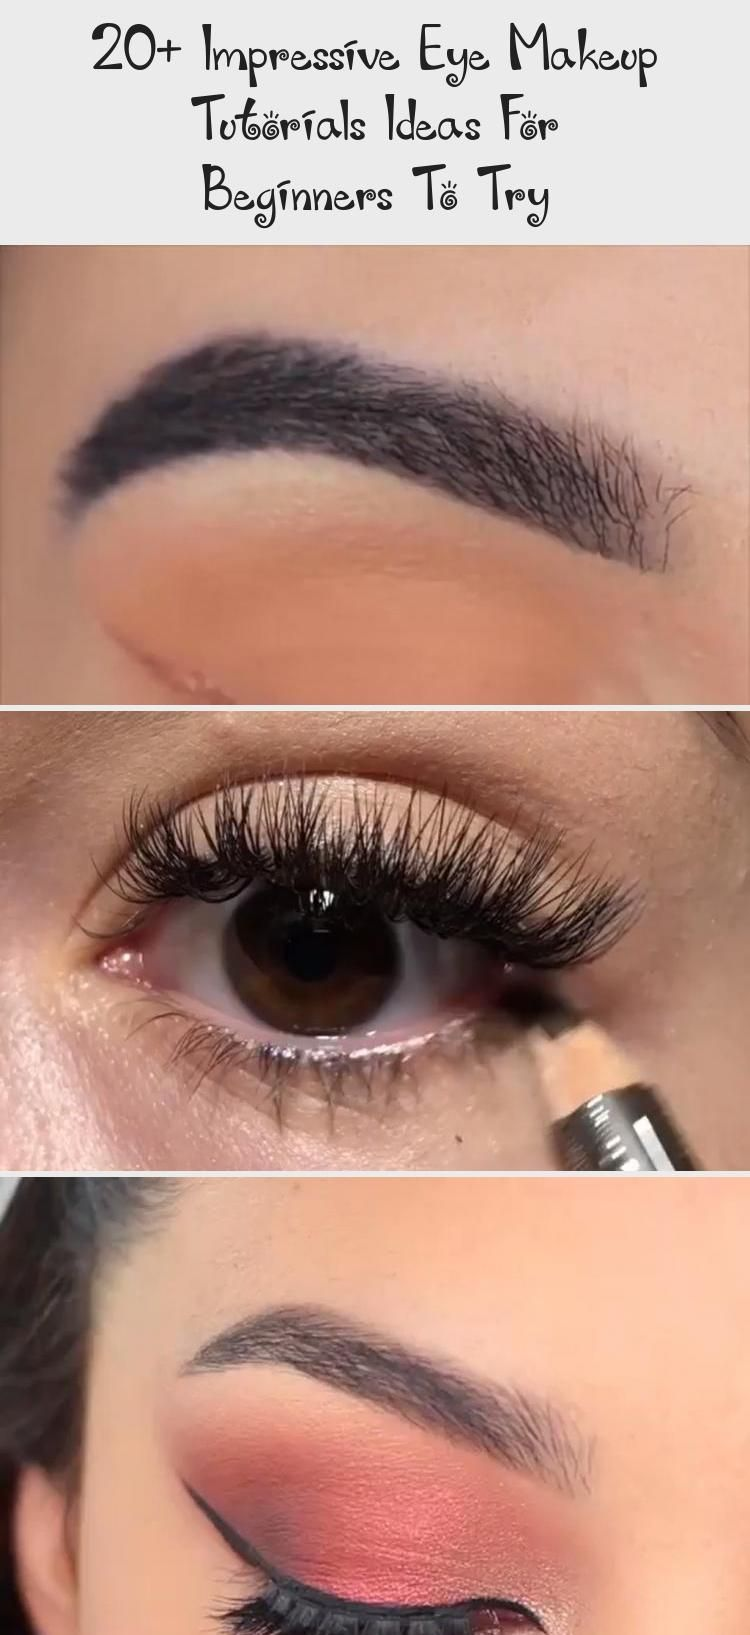 20+ Impressive Eye Makeup Tutorials Ideas For Beginners To